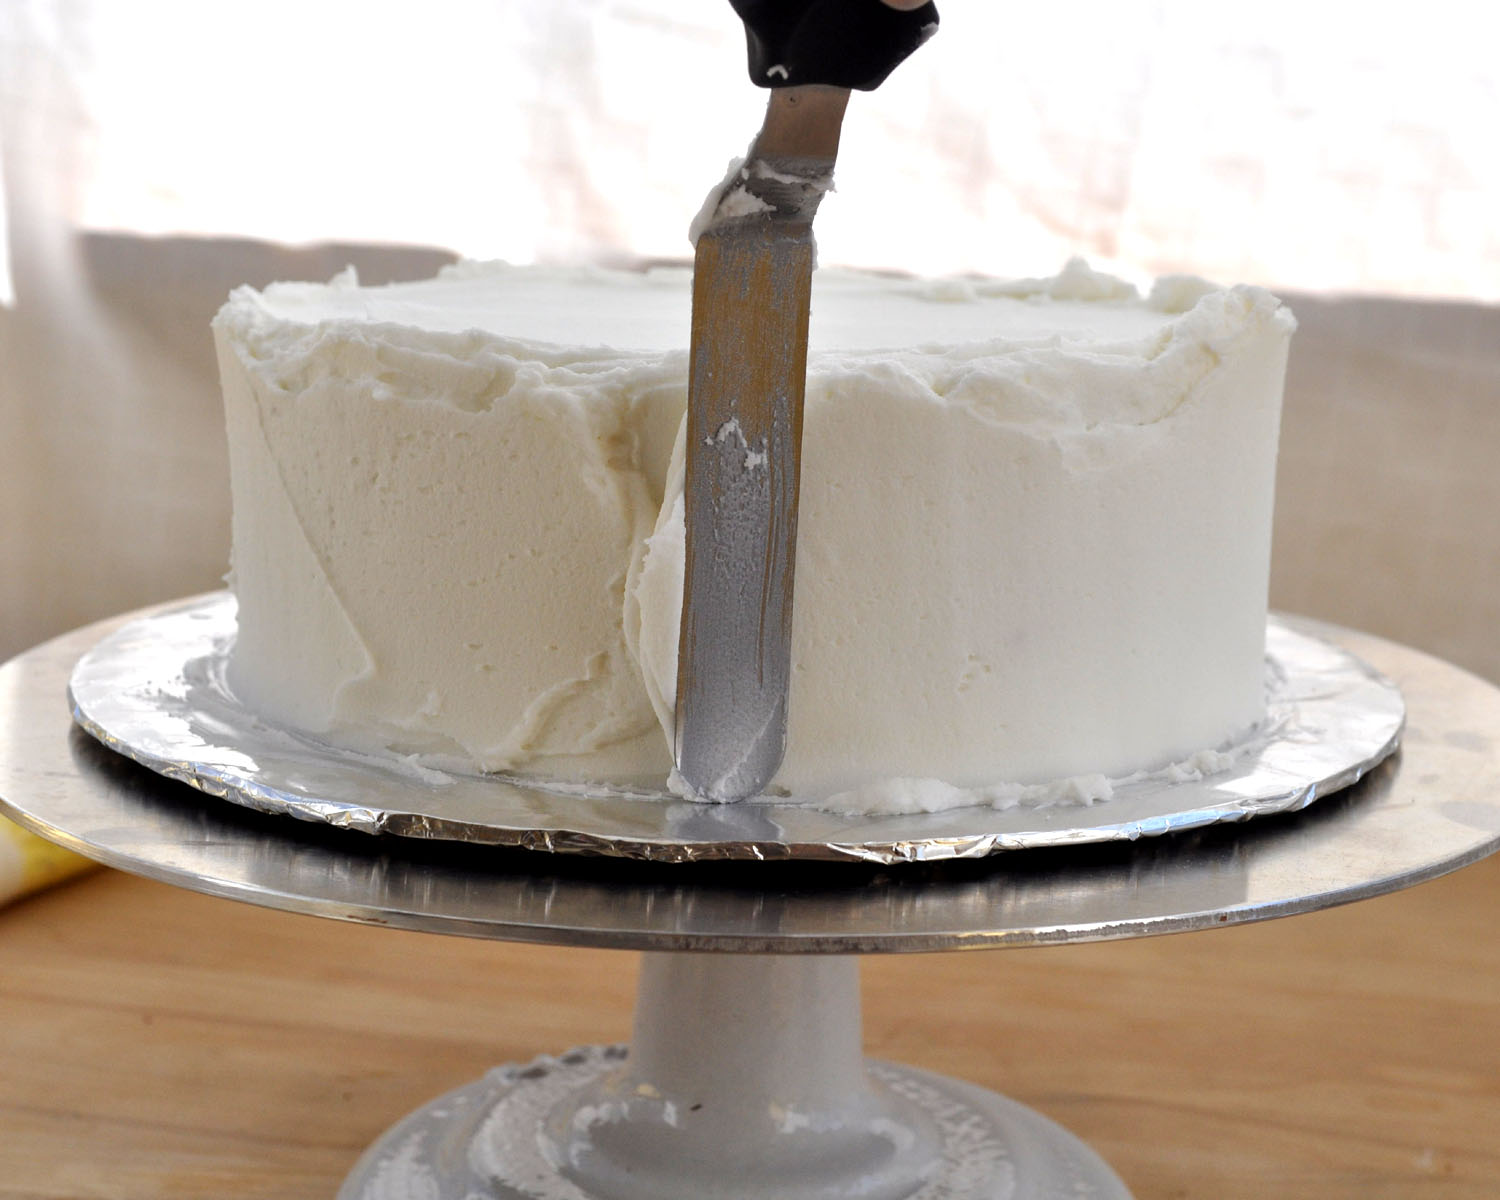 Chocolate Ganache Icing Is The Most Rich Decadent Icing For The Chocolate Lover In Your Life This Is The Only Way To Cover A Cake